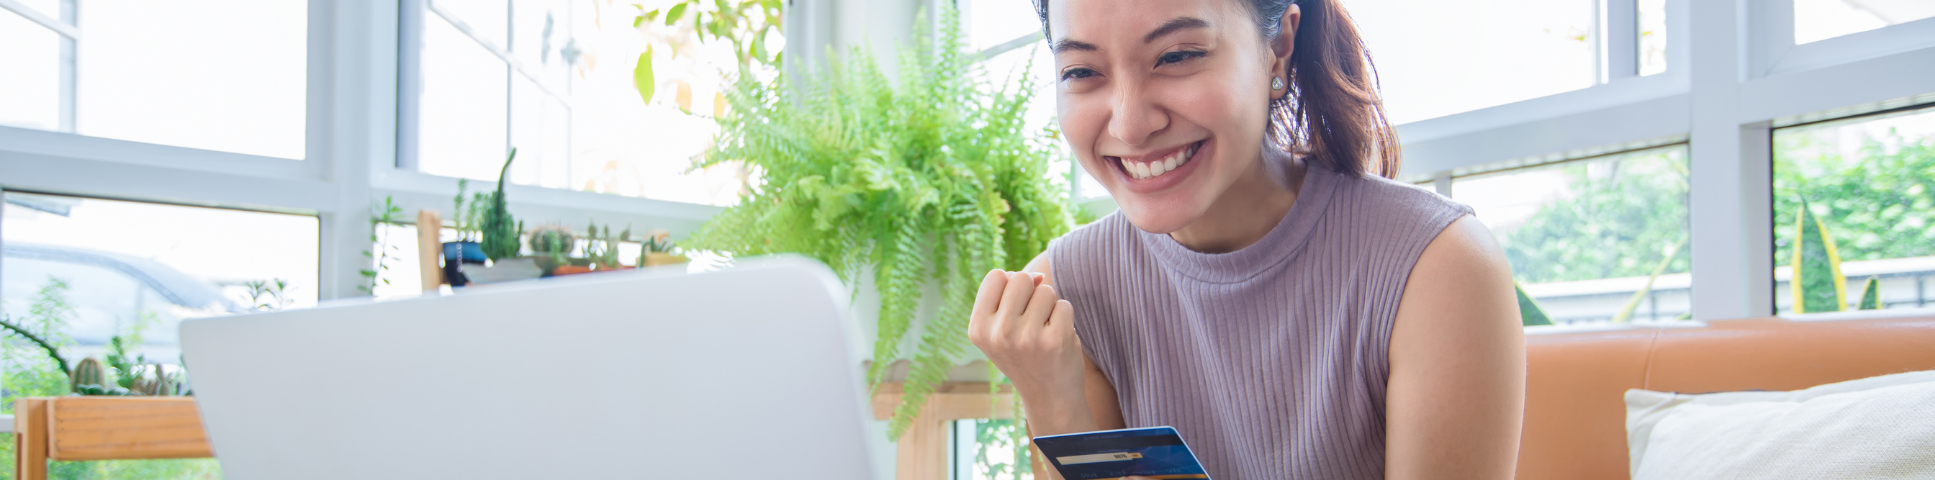 Lady smiling with credit card